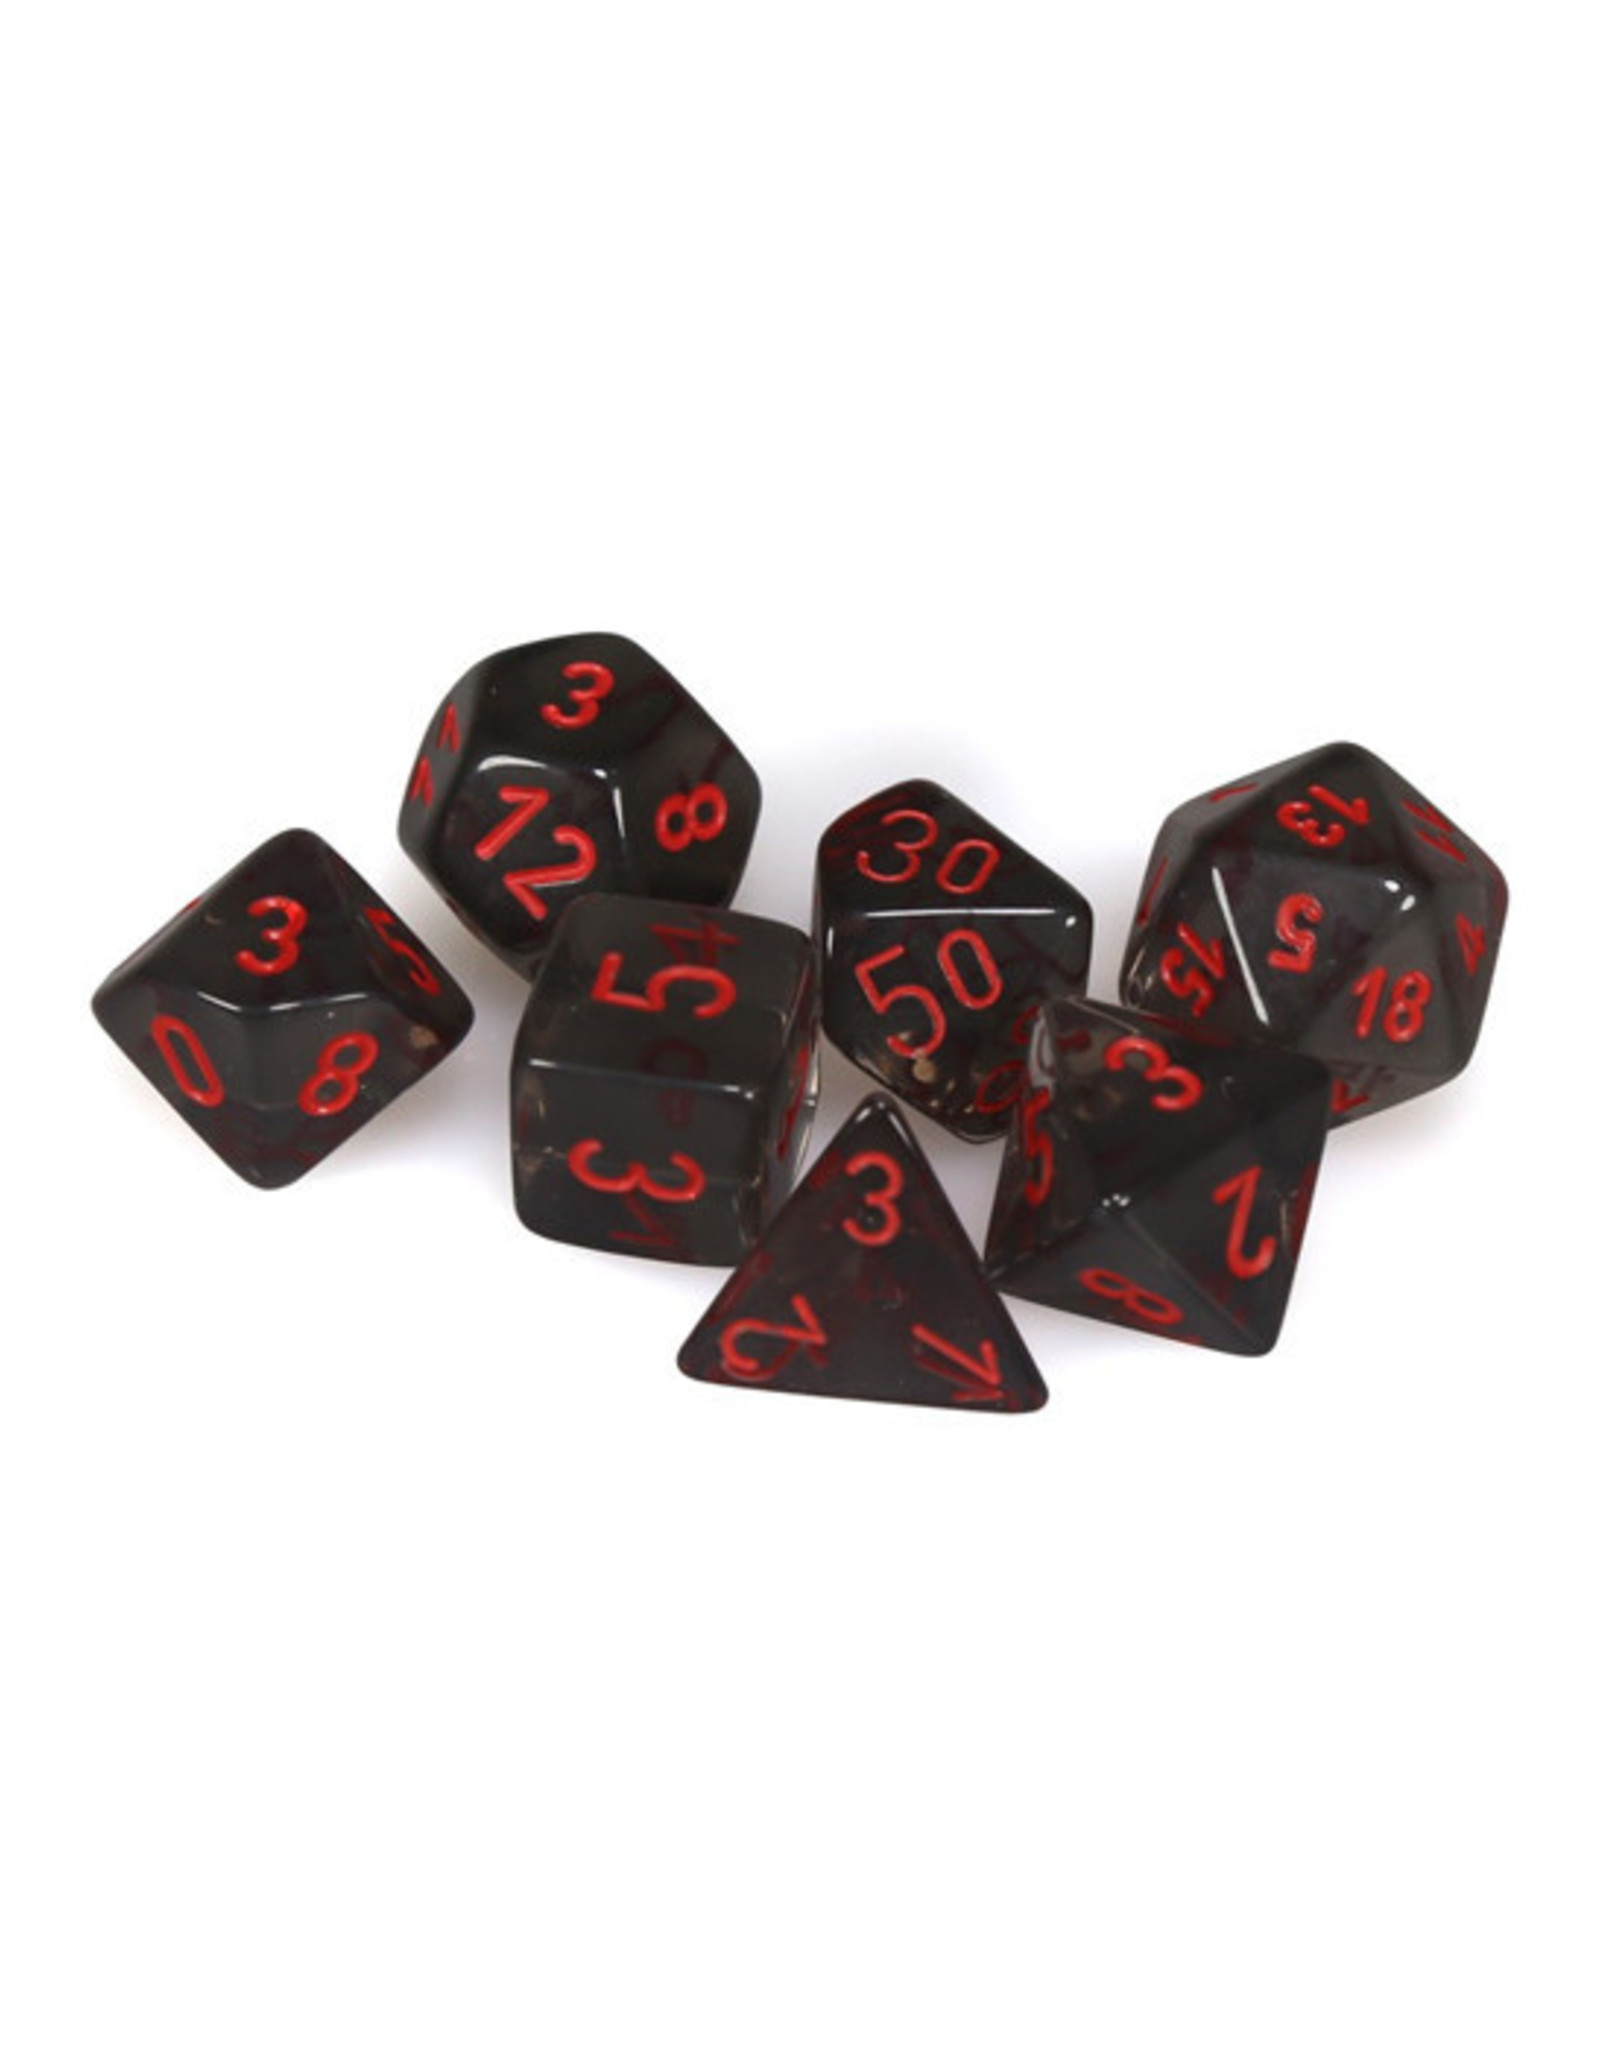 Chessex Chessex: Poly 7 Set - Translucent - Smoke w/ Red